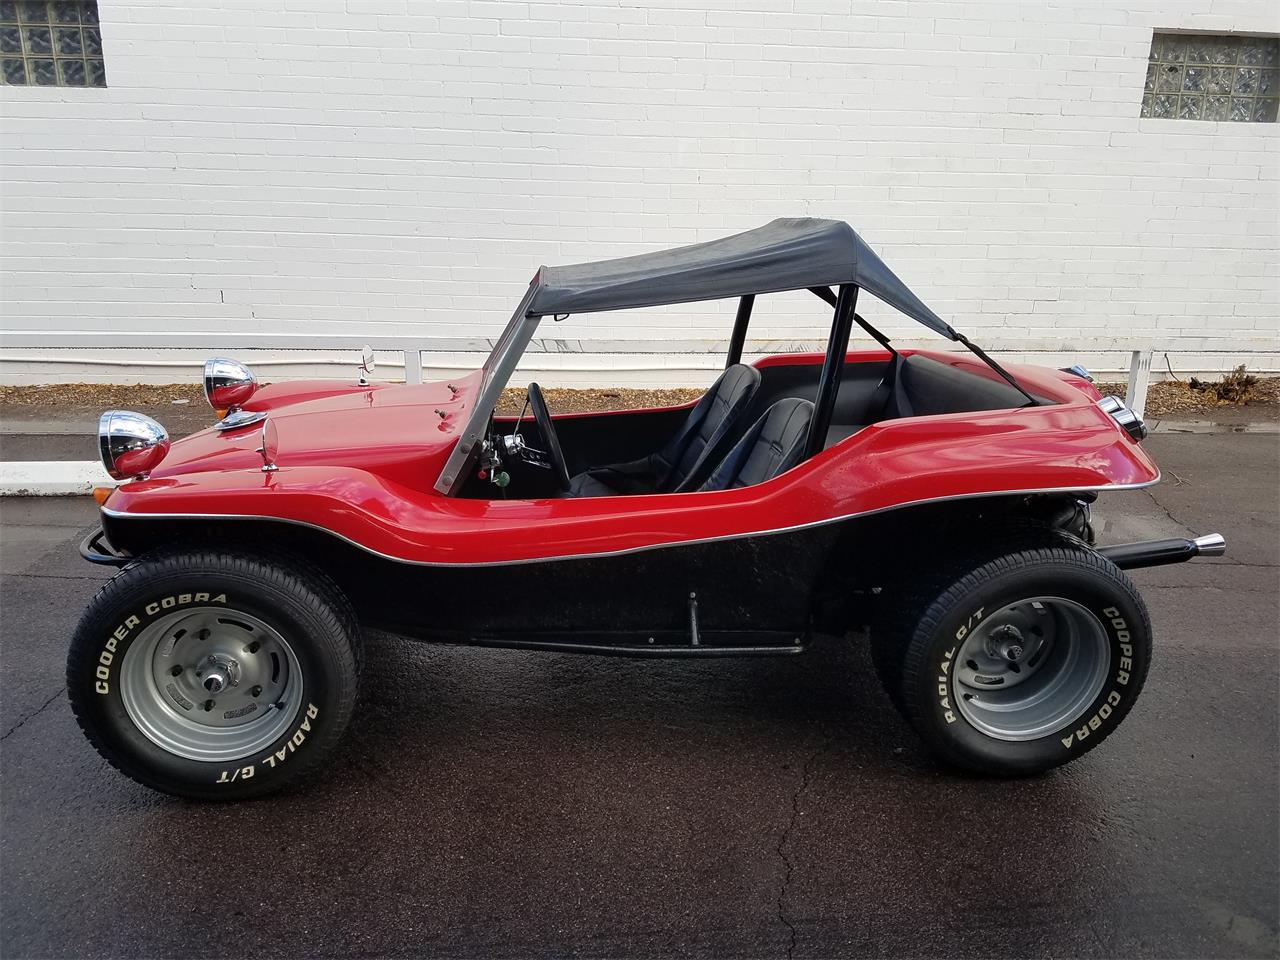 1965 Volkswagen Dune Buggy for Sale   ClassicCars.com   CC-935560